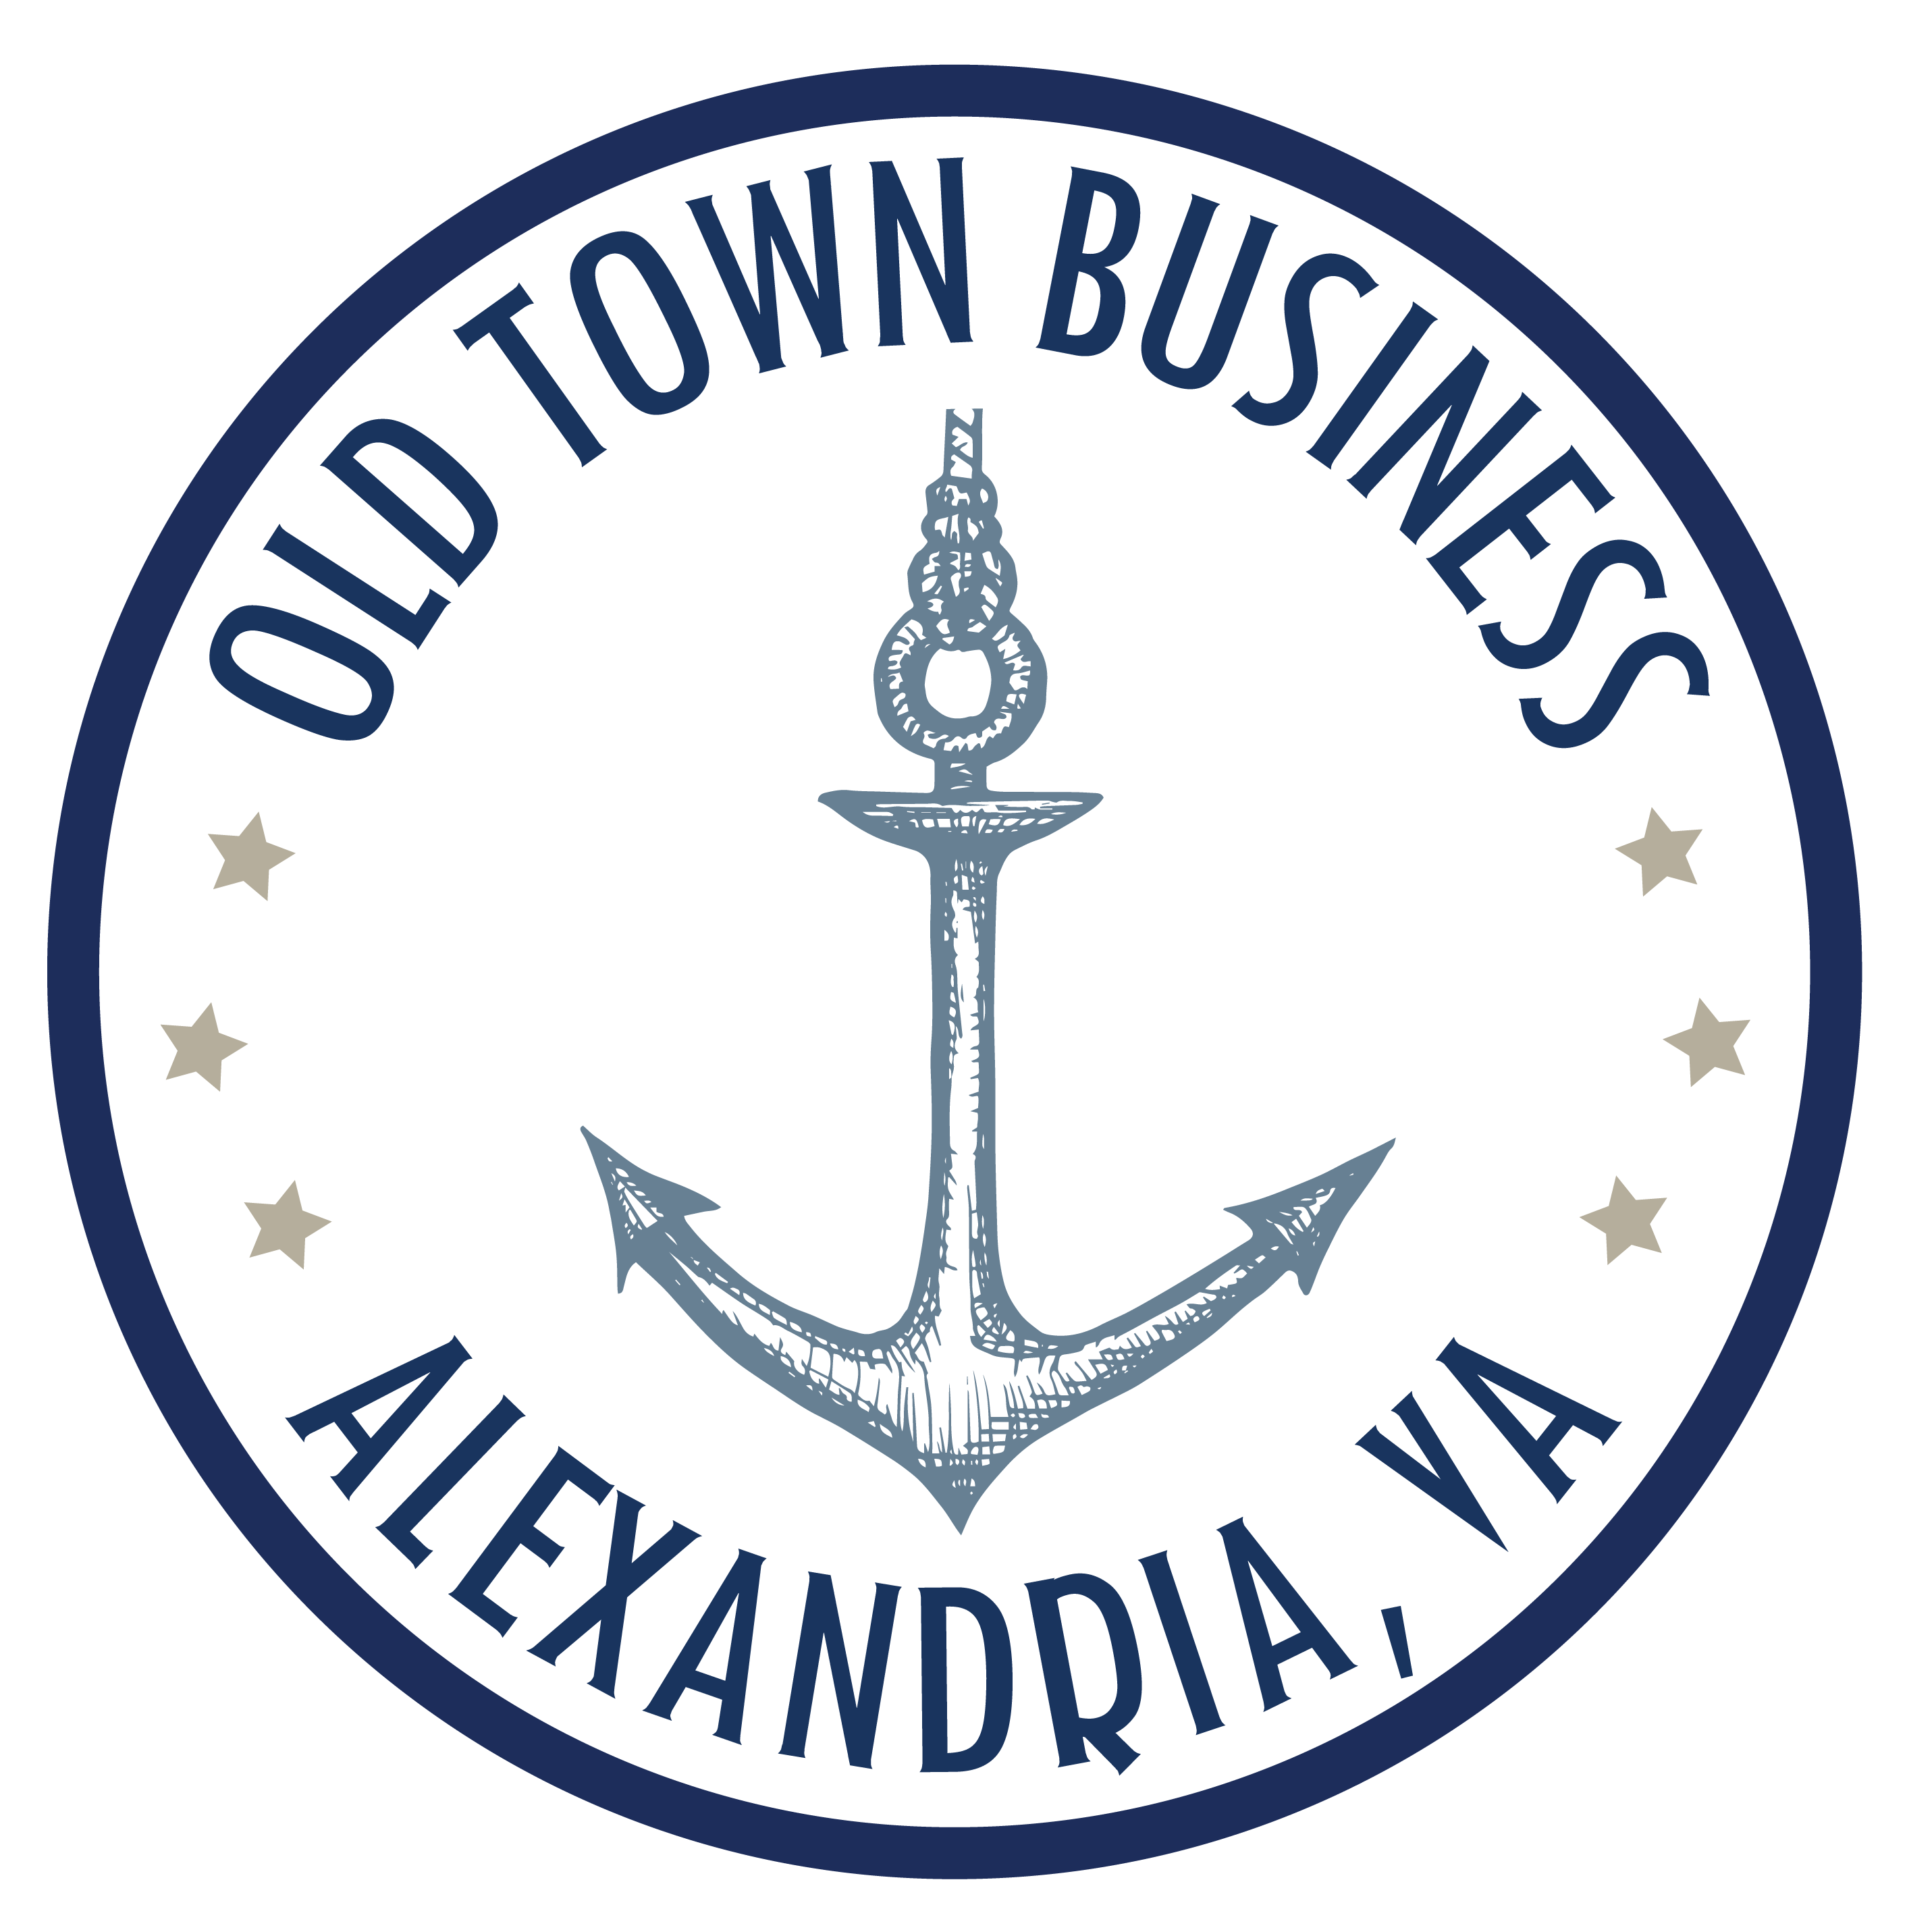 Old Town Business - Alexandria, VA